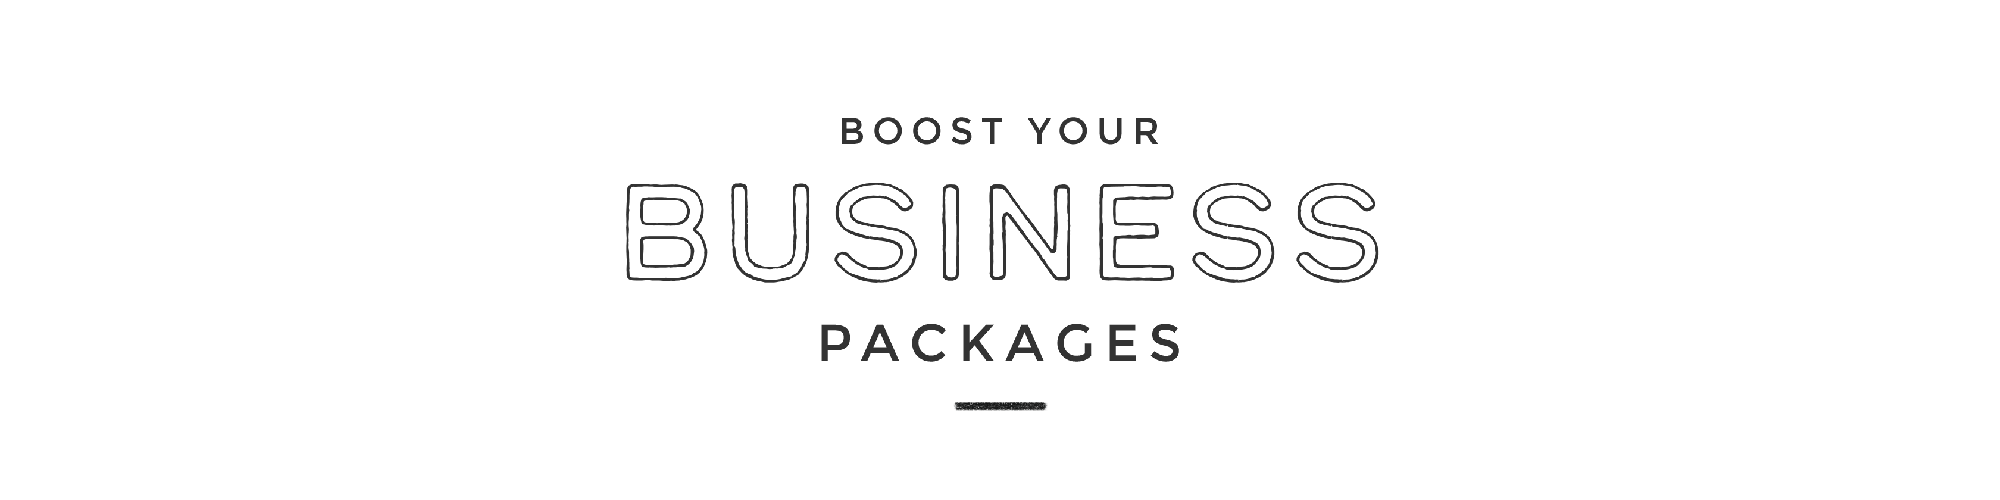 Urban-Emotions-Text-Boost-Your-Business-Packages.png